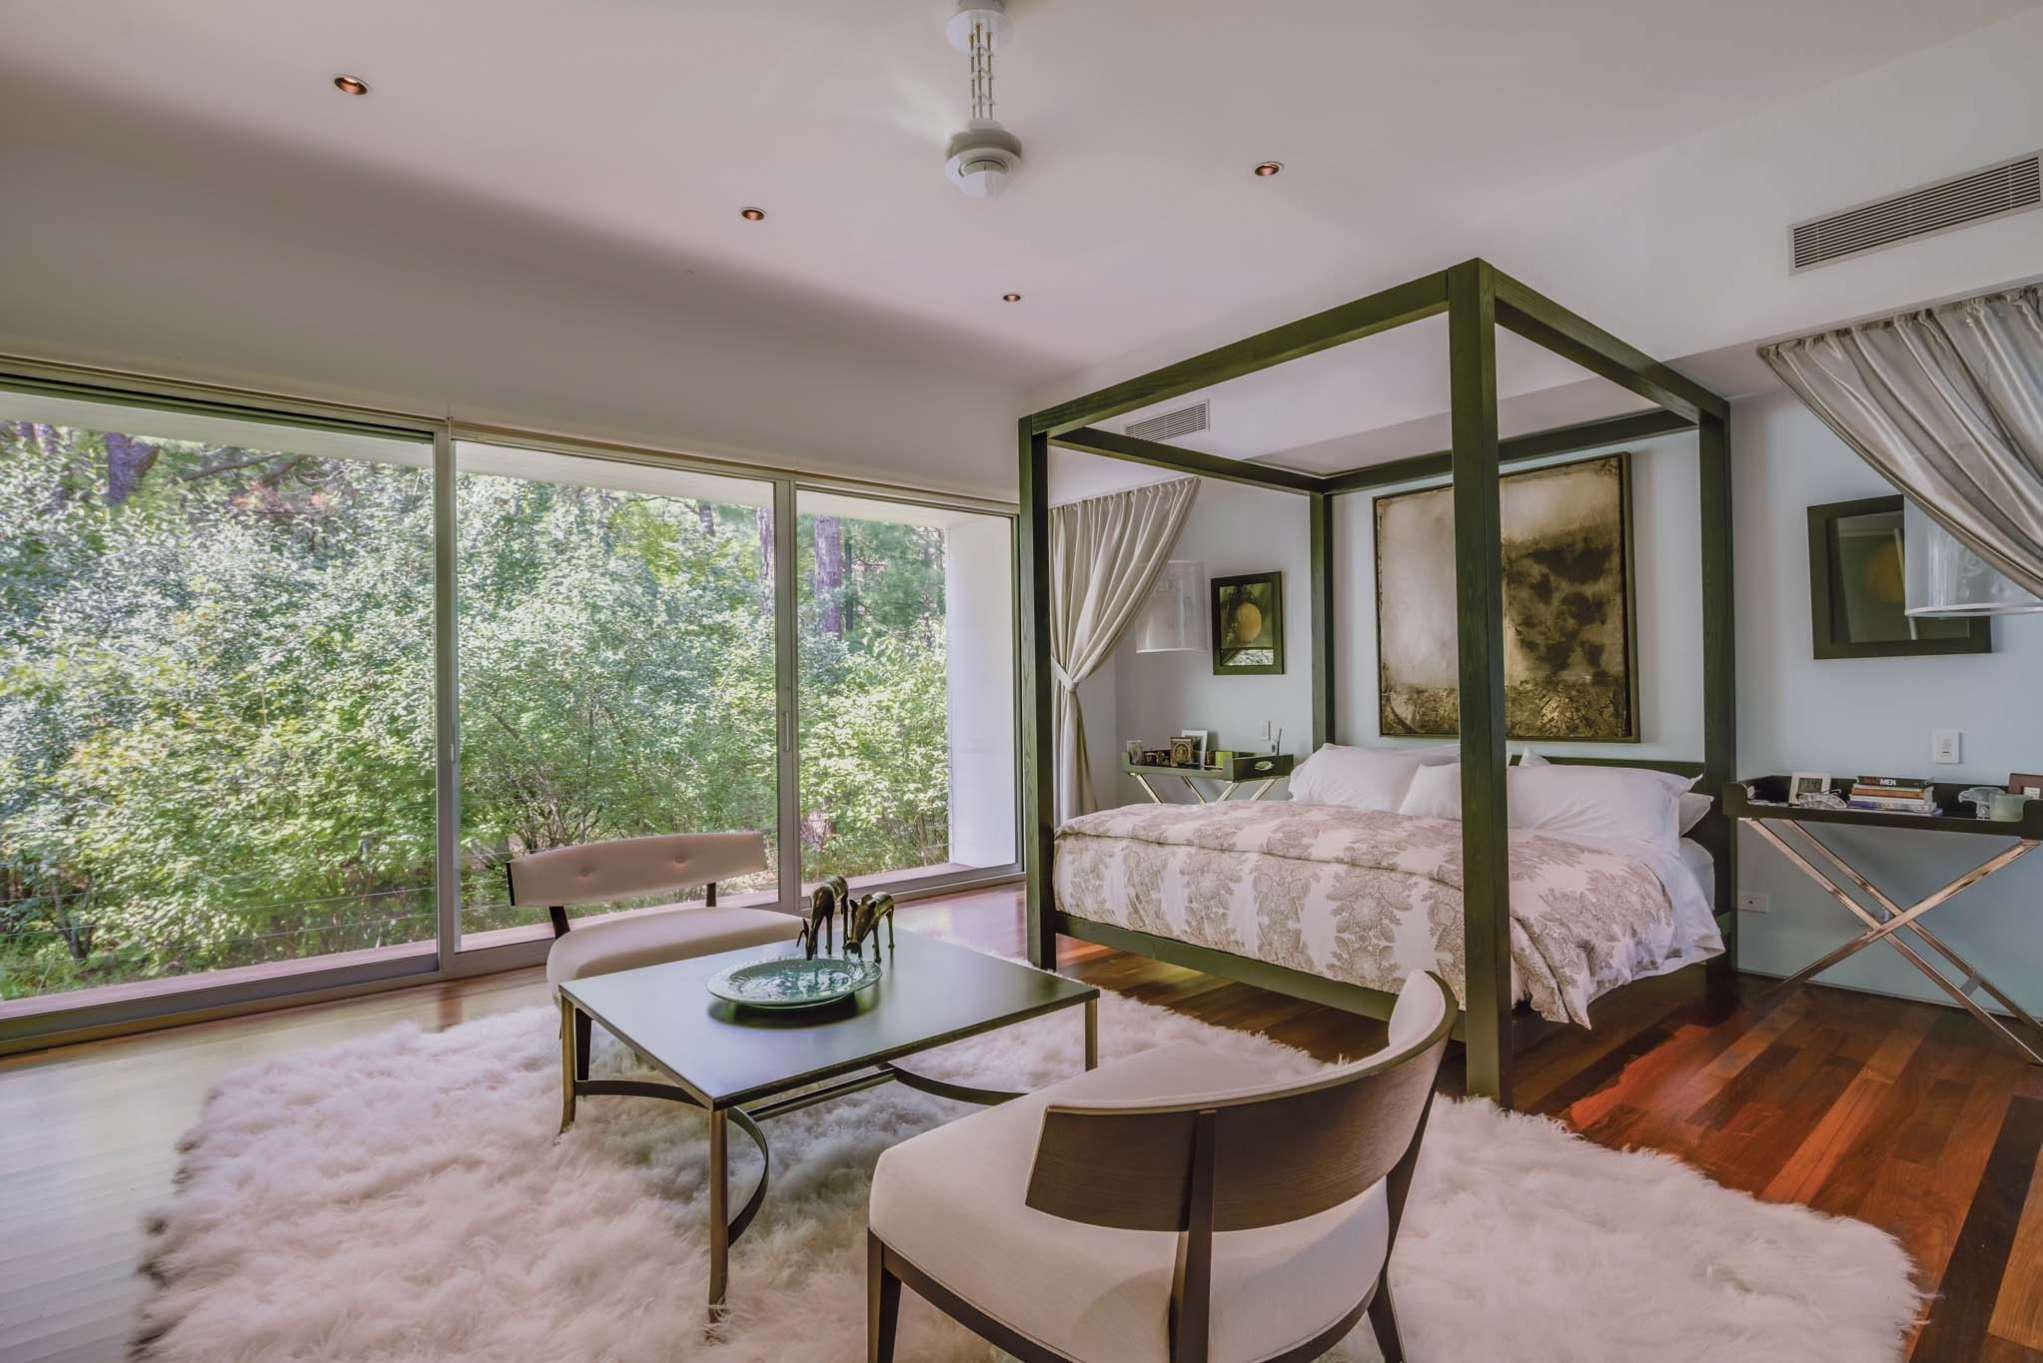 Additional photo for property listing at Reduced Live In Your Art A Modern Masterpiece In Sagaponack 25 Forest Crossing,  Sagaponack, Nueva York